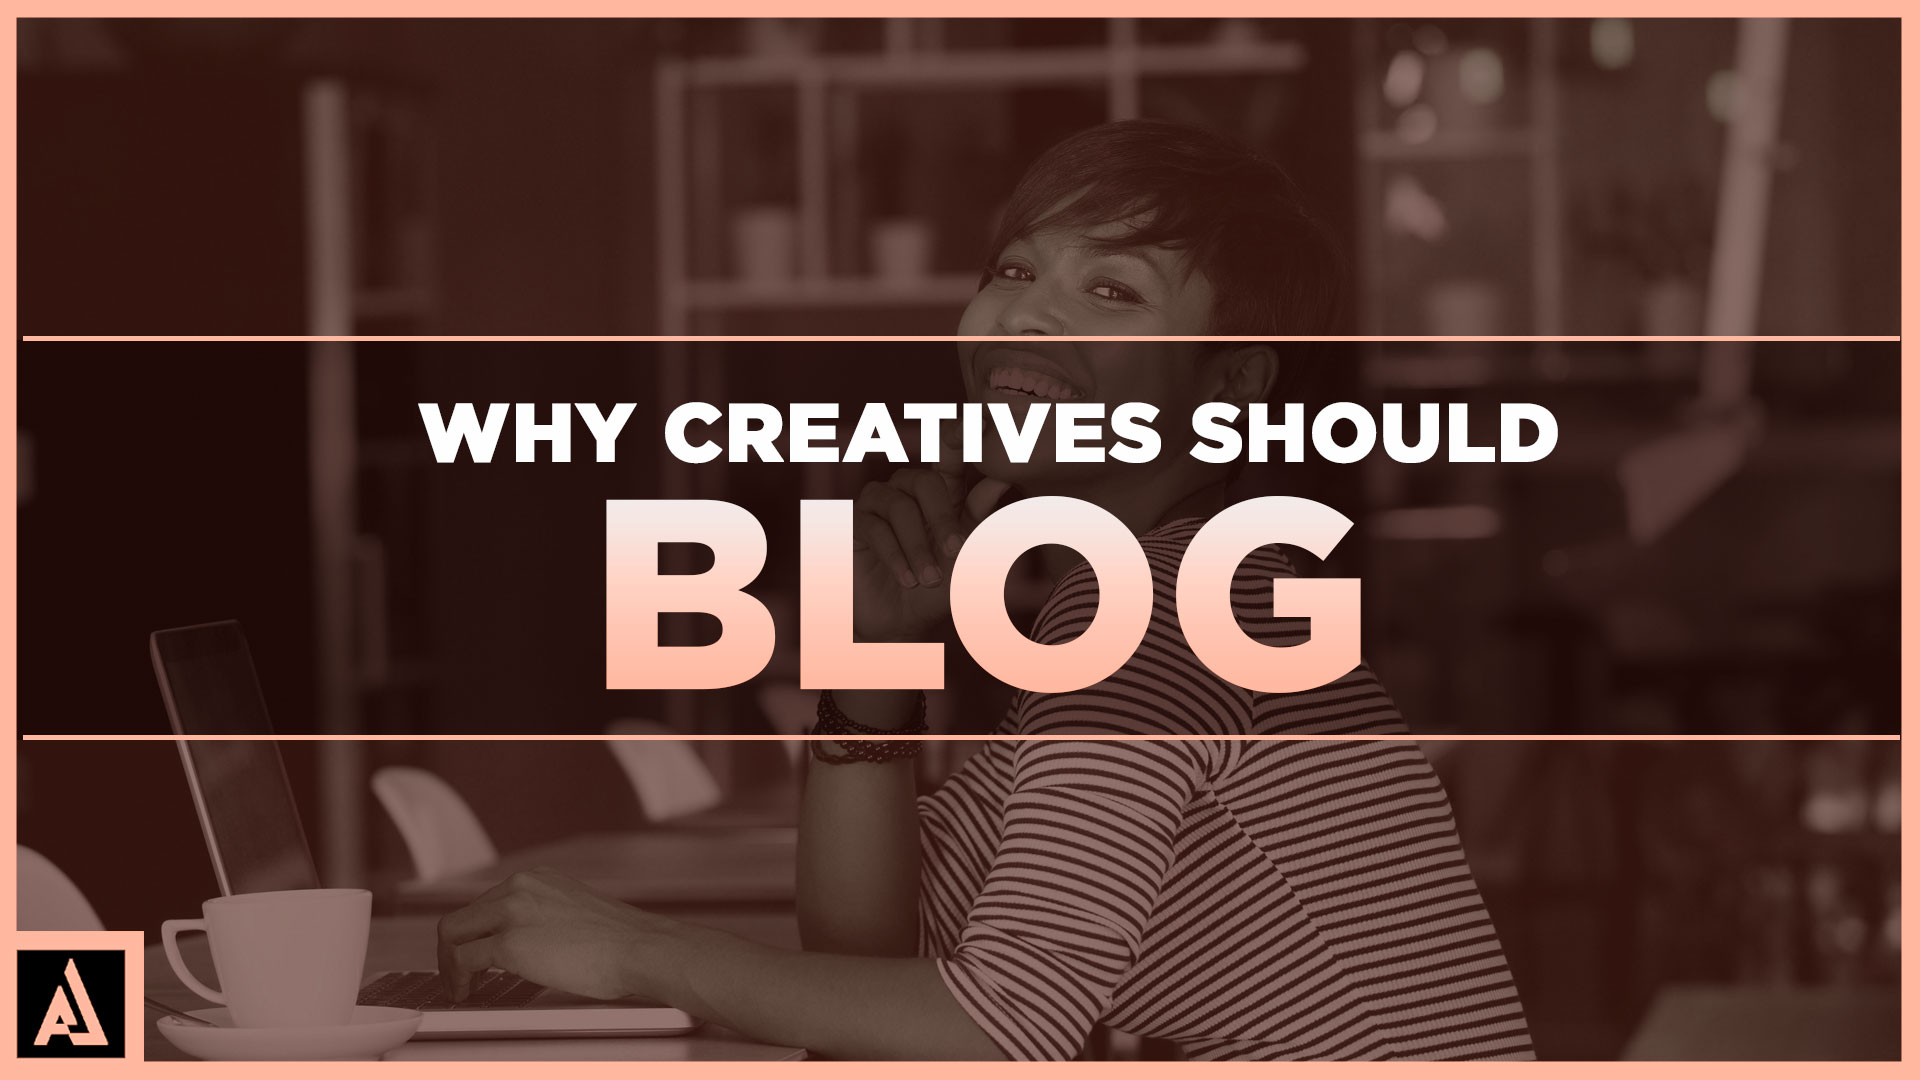 Why-Creatives-Should-Blog-1.jpg